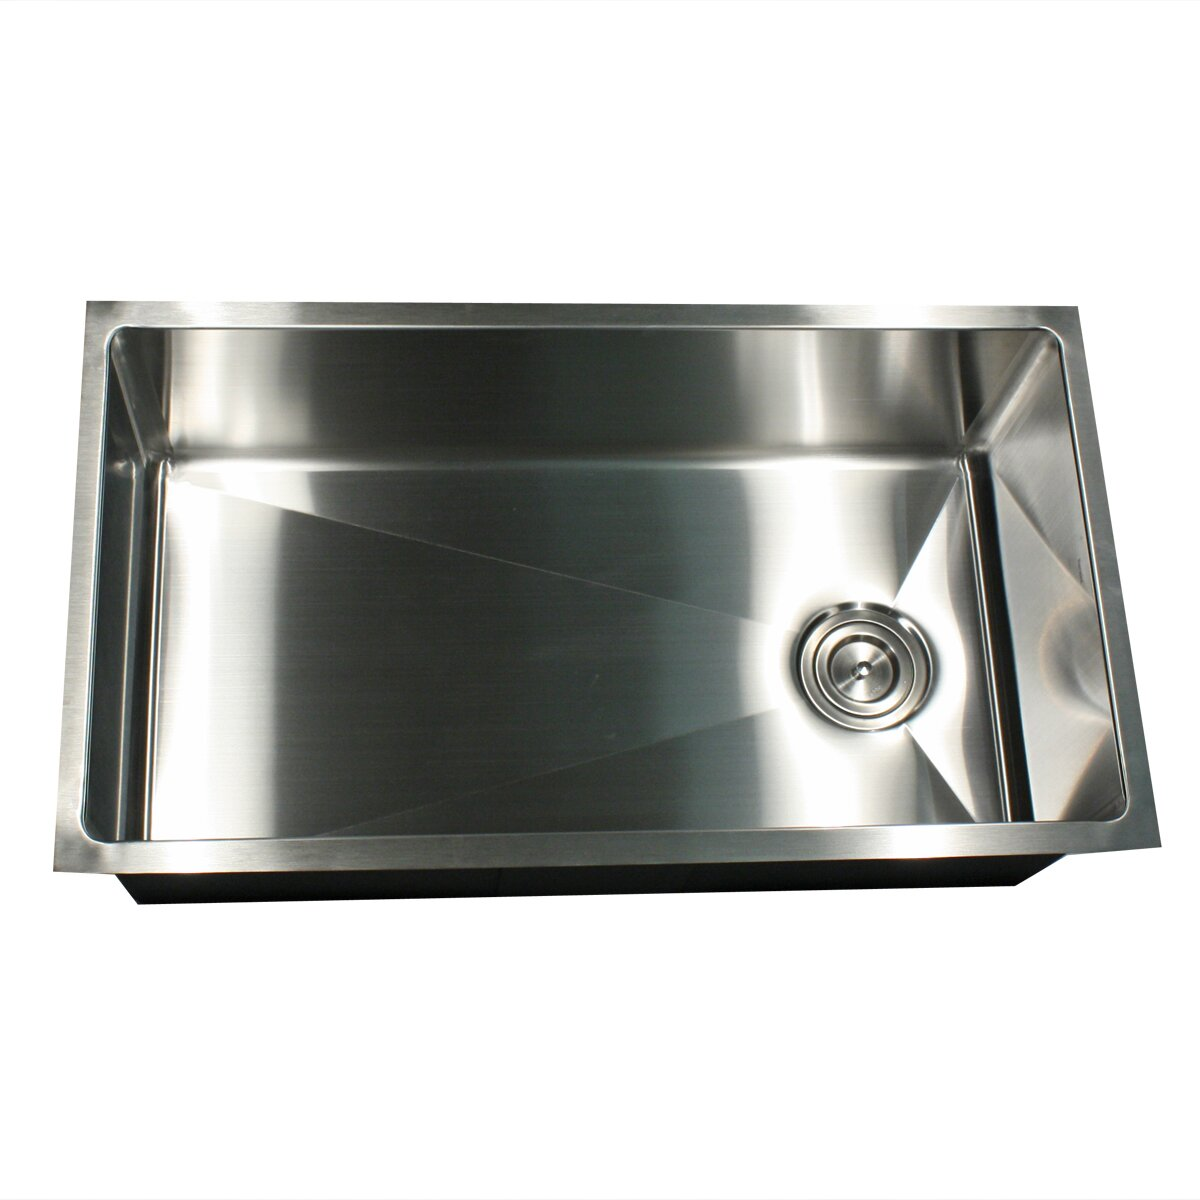 nantucket sinks 32 x 18 small radius stainless steel kitchen sink reviews wayfair. Black Bedroom Furniture Sets. Home Design Ideas